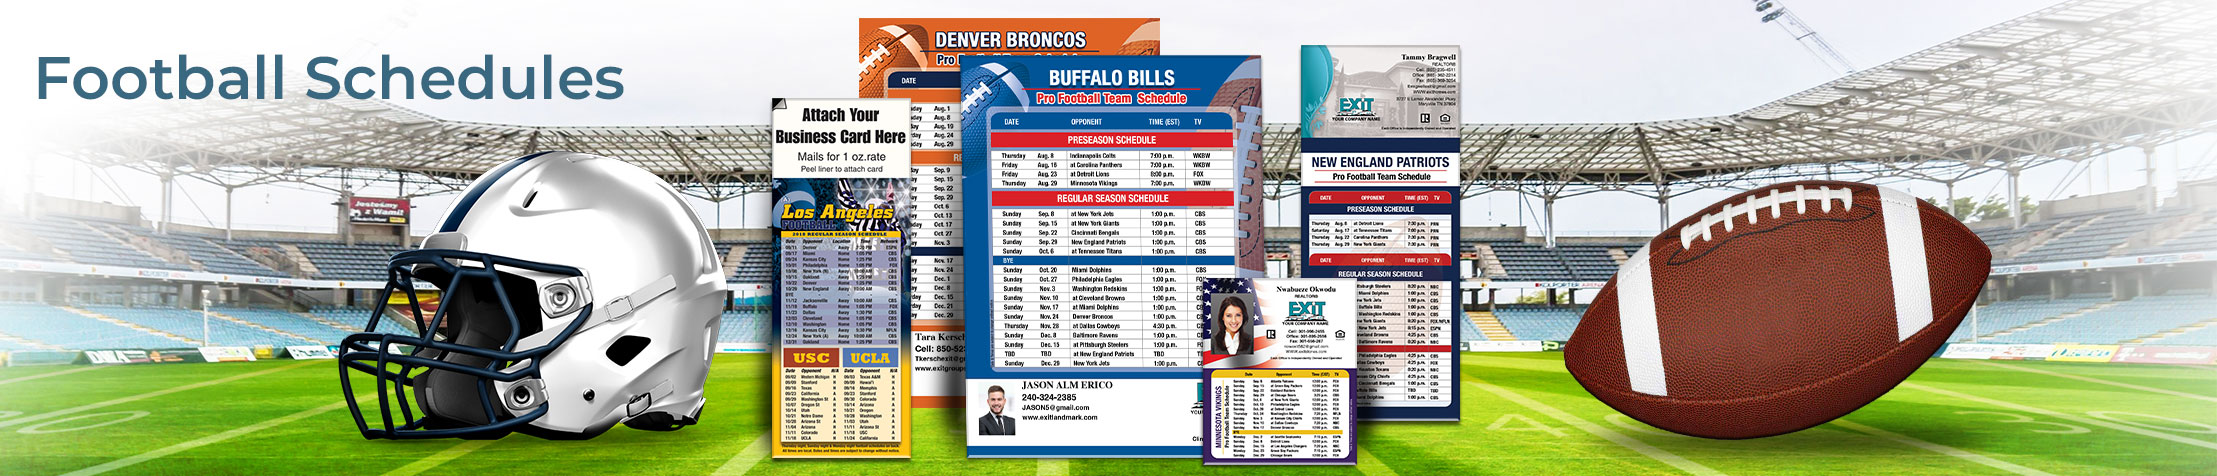 Exit Realty Football Schedules - Exit Realty approved vendor personalized football schedules | BestPrintBuy.com